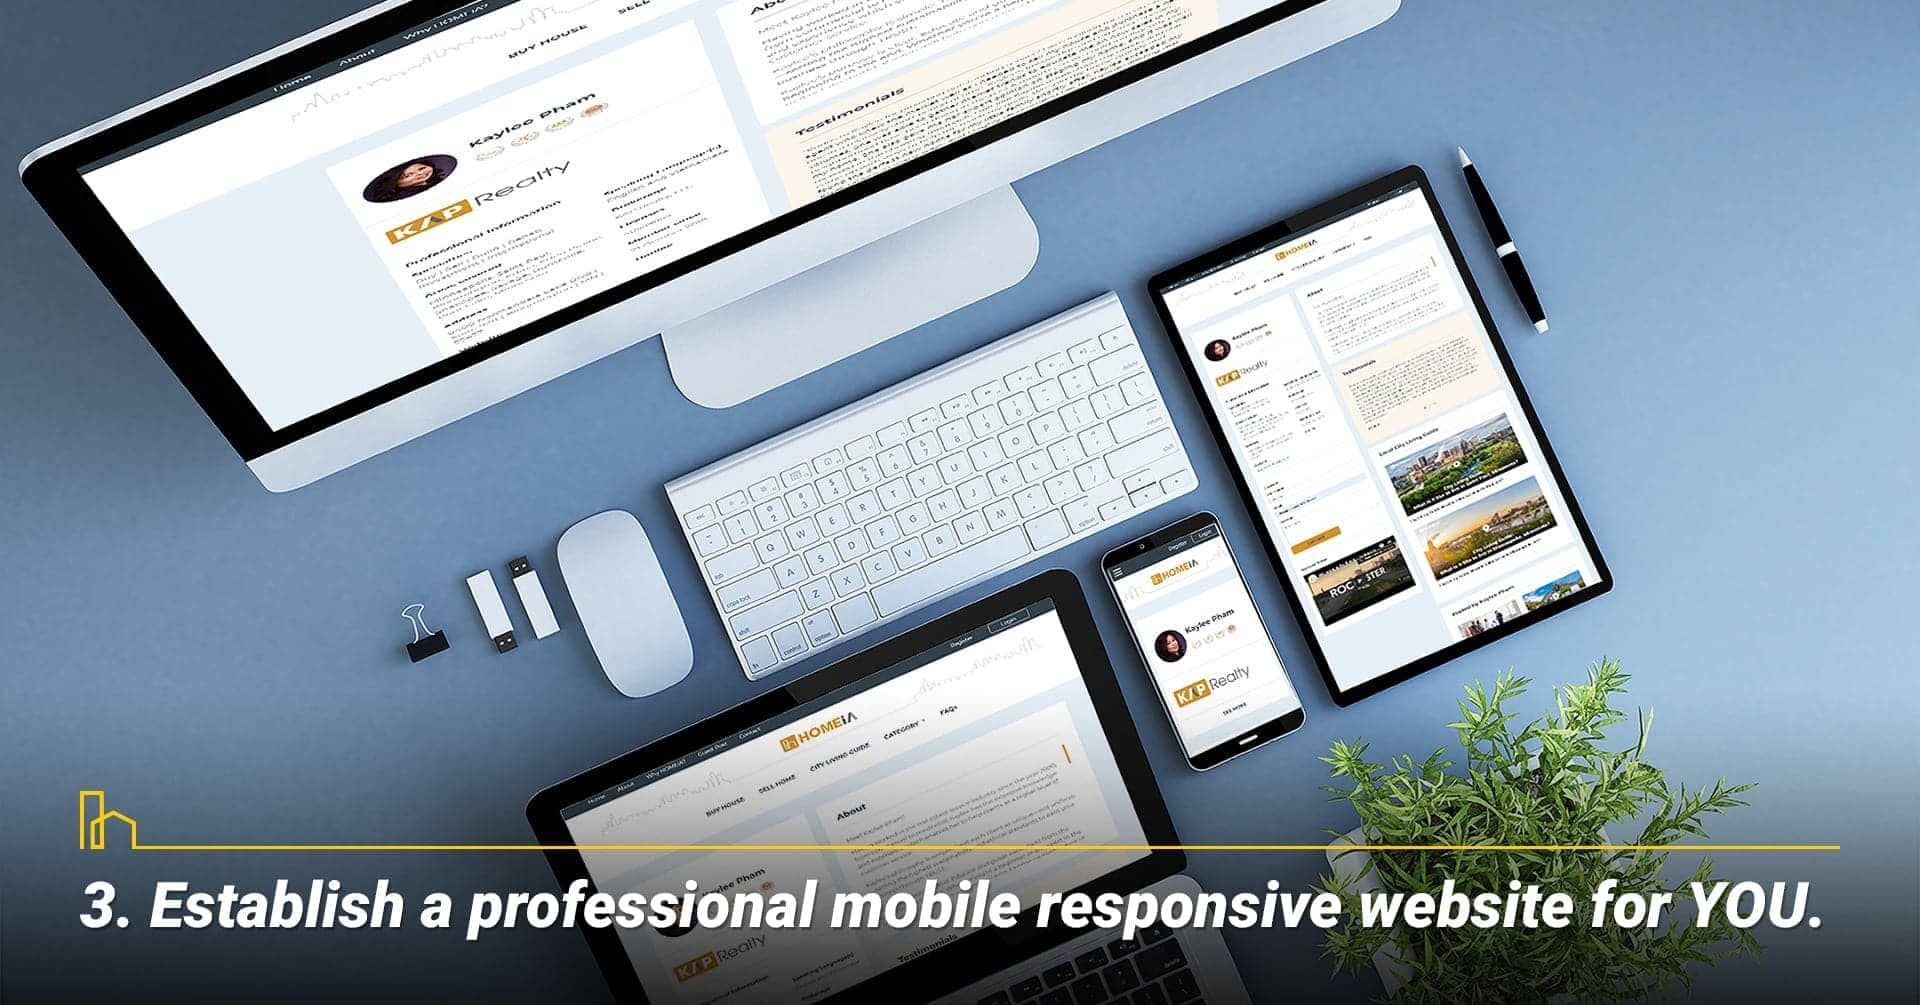 Establish a professional mobile responsive website for YOU